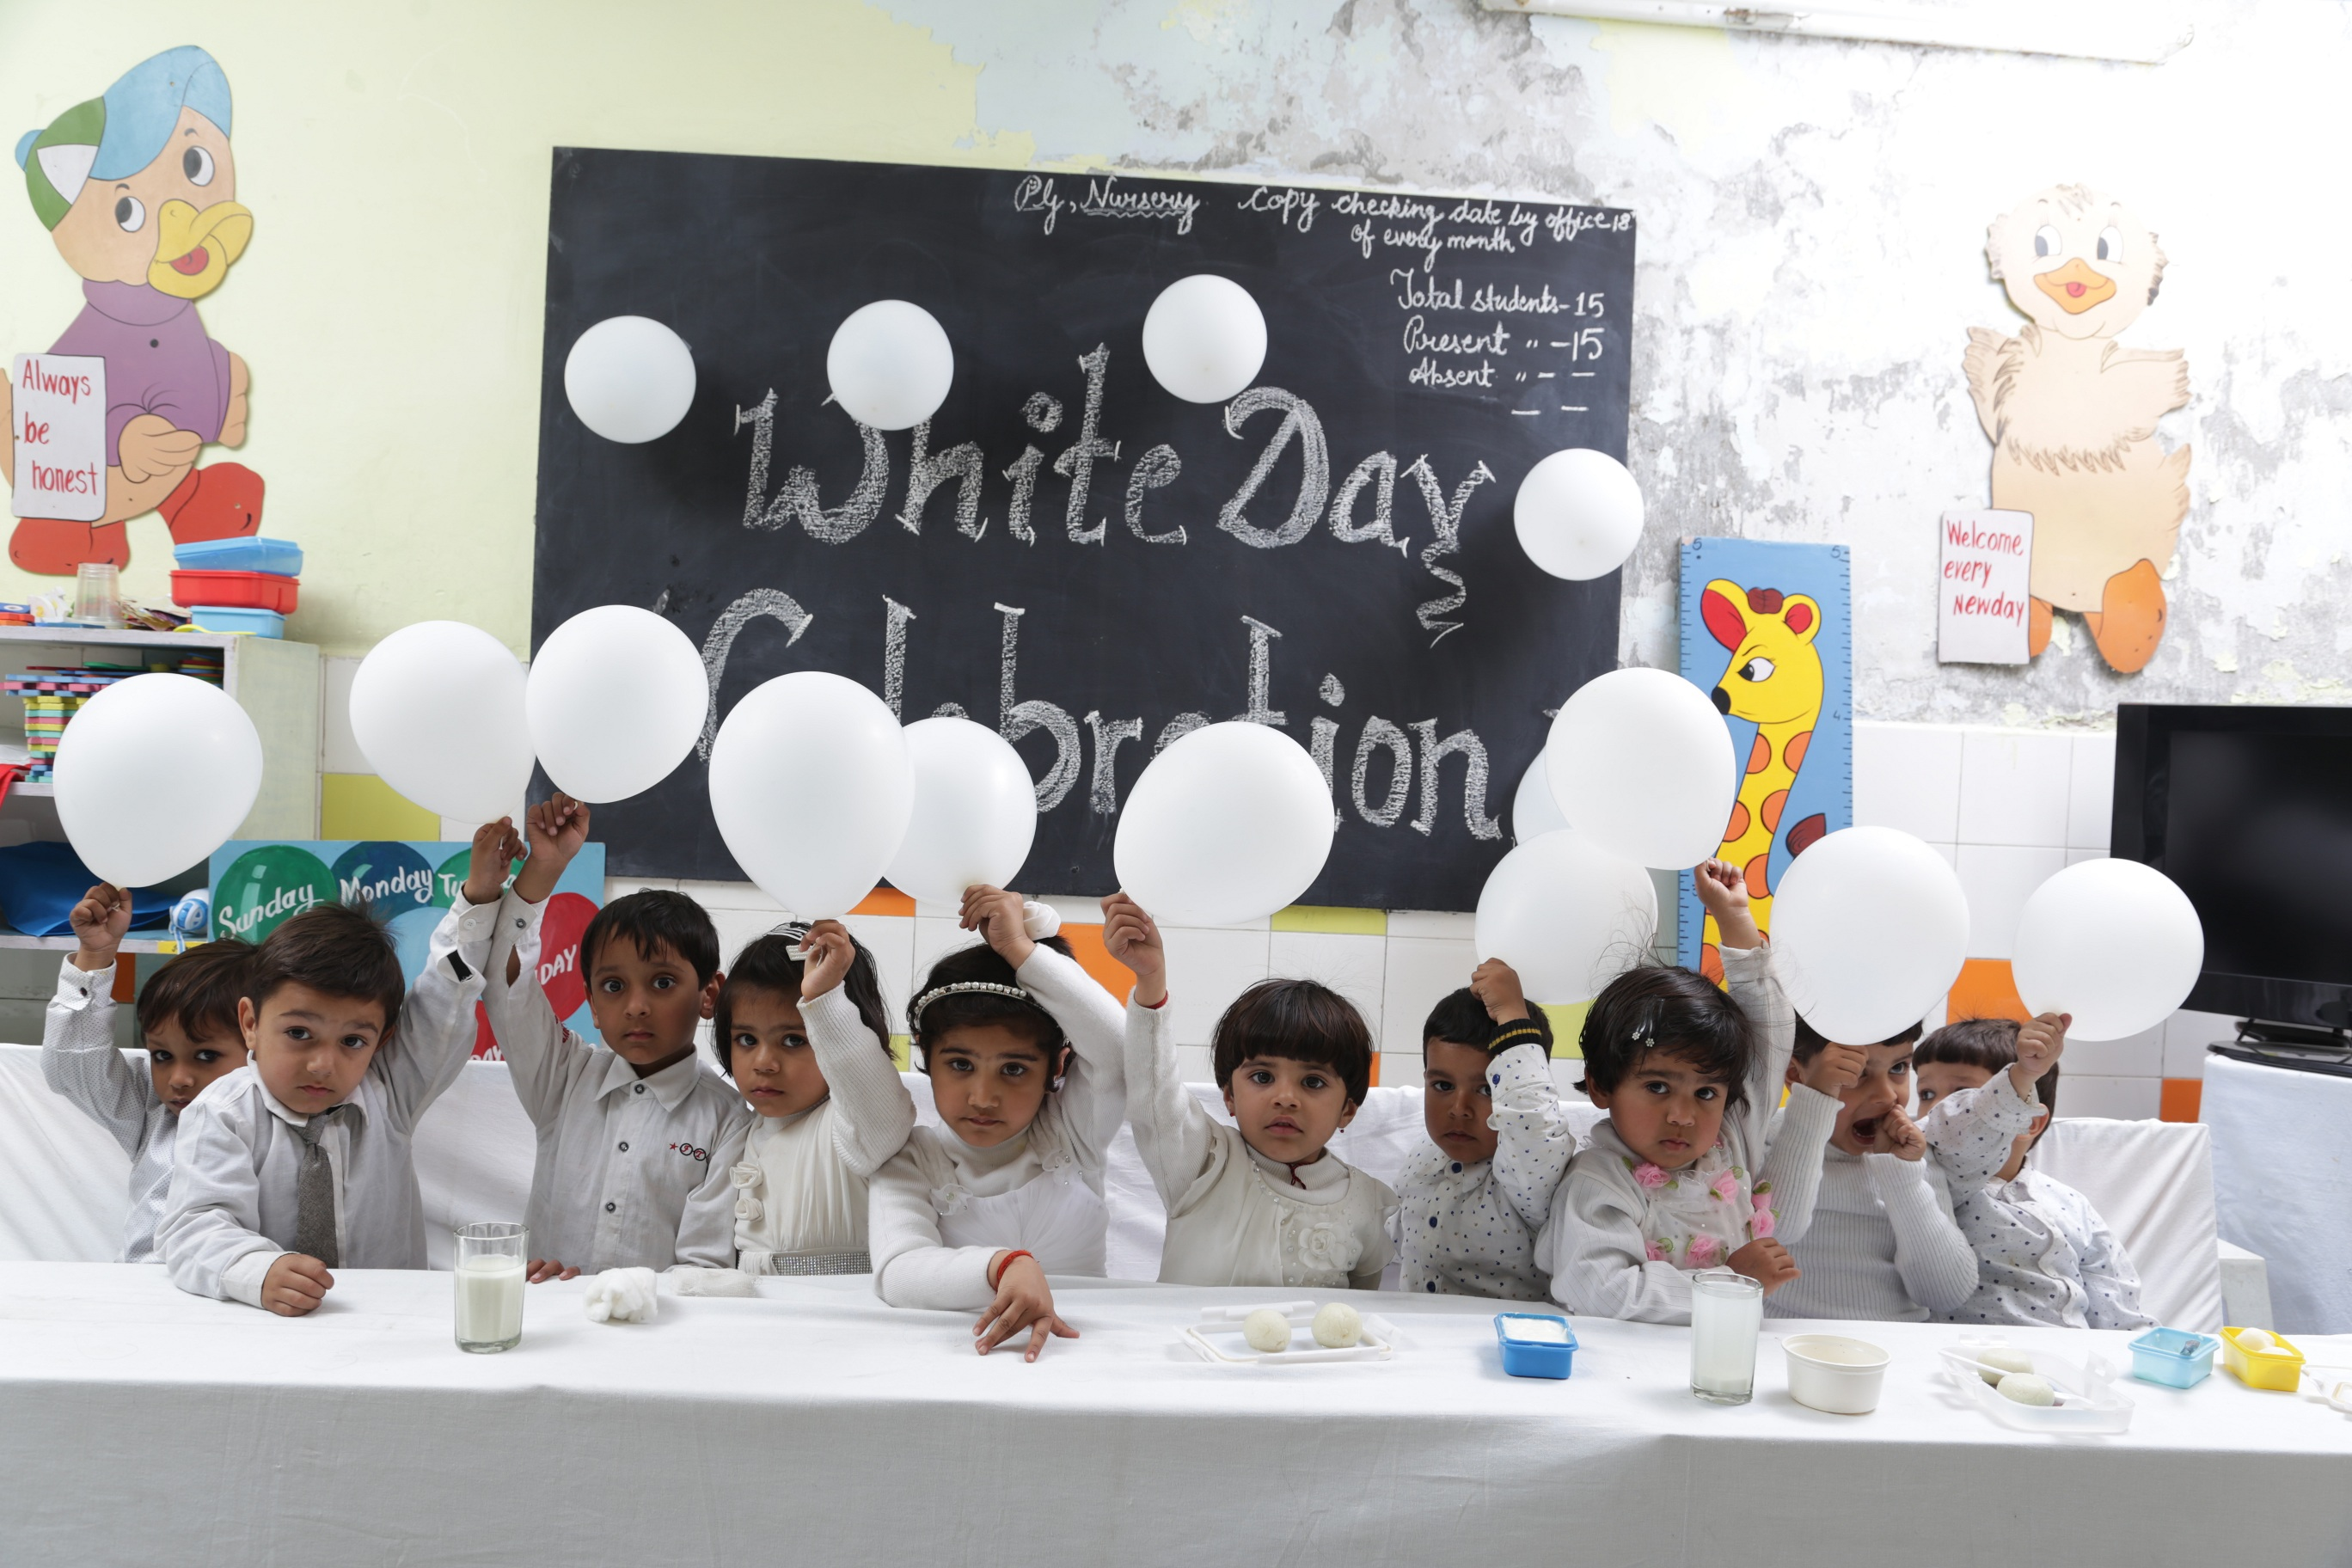 Jolly angels kids White day celebration